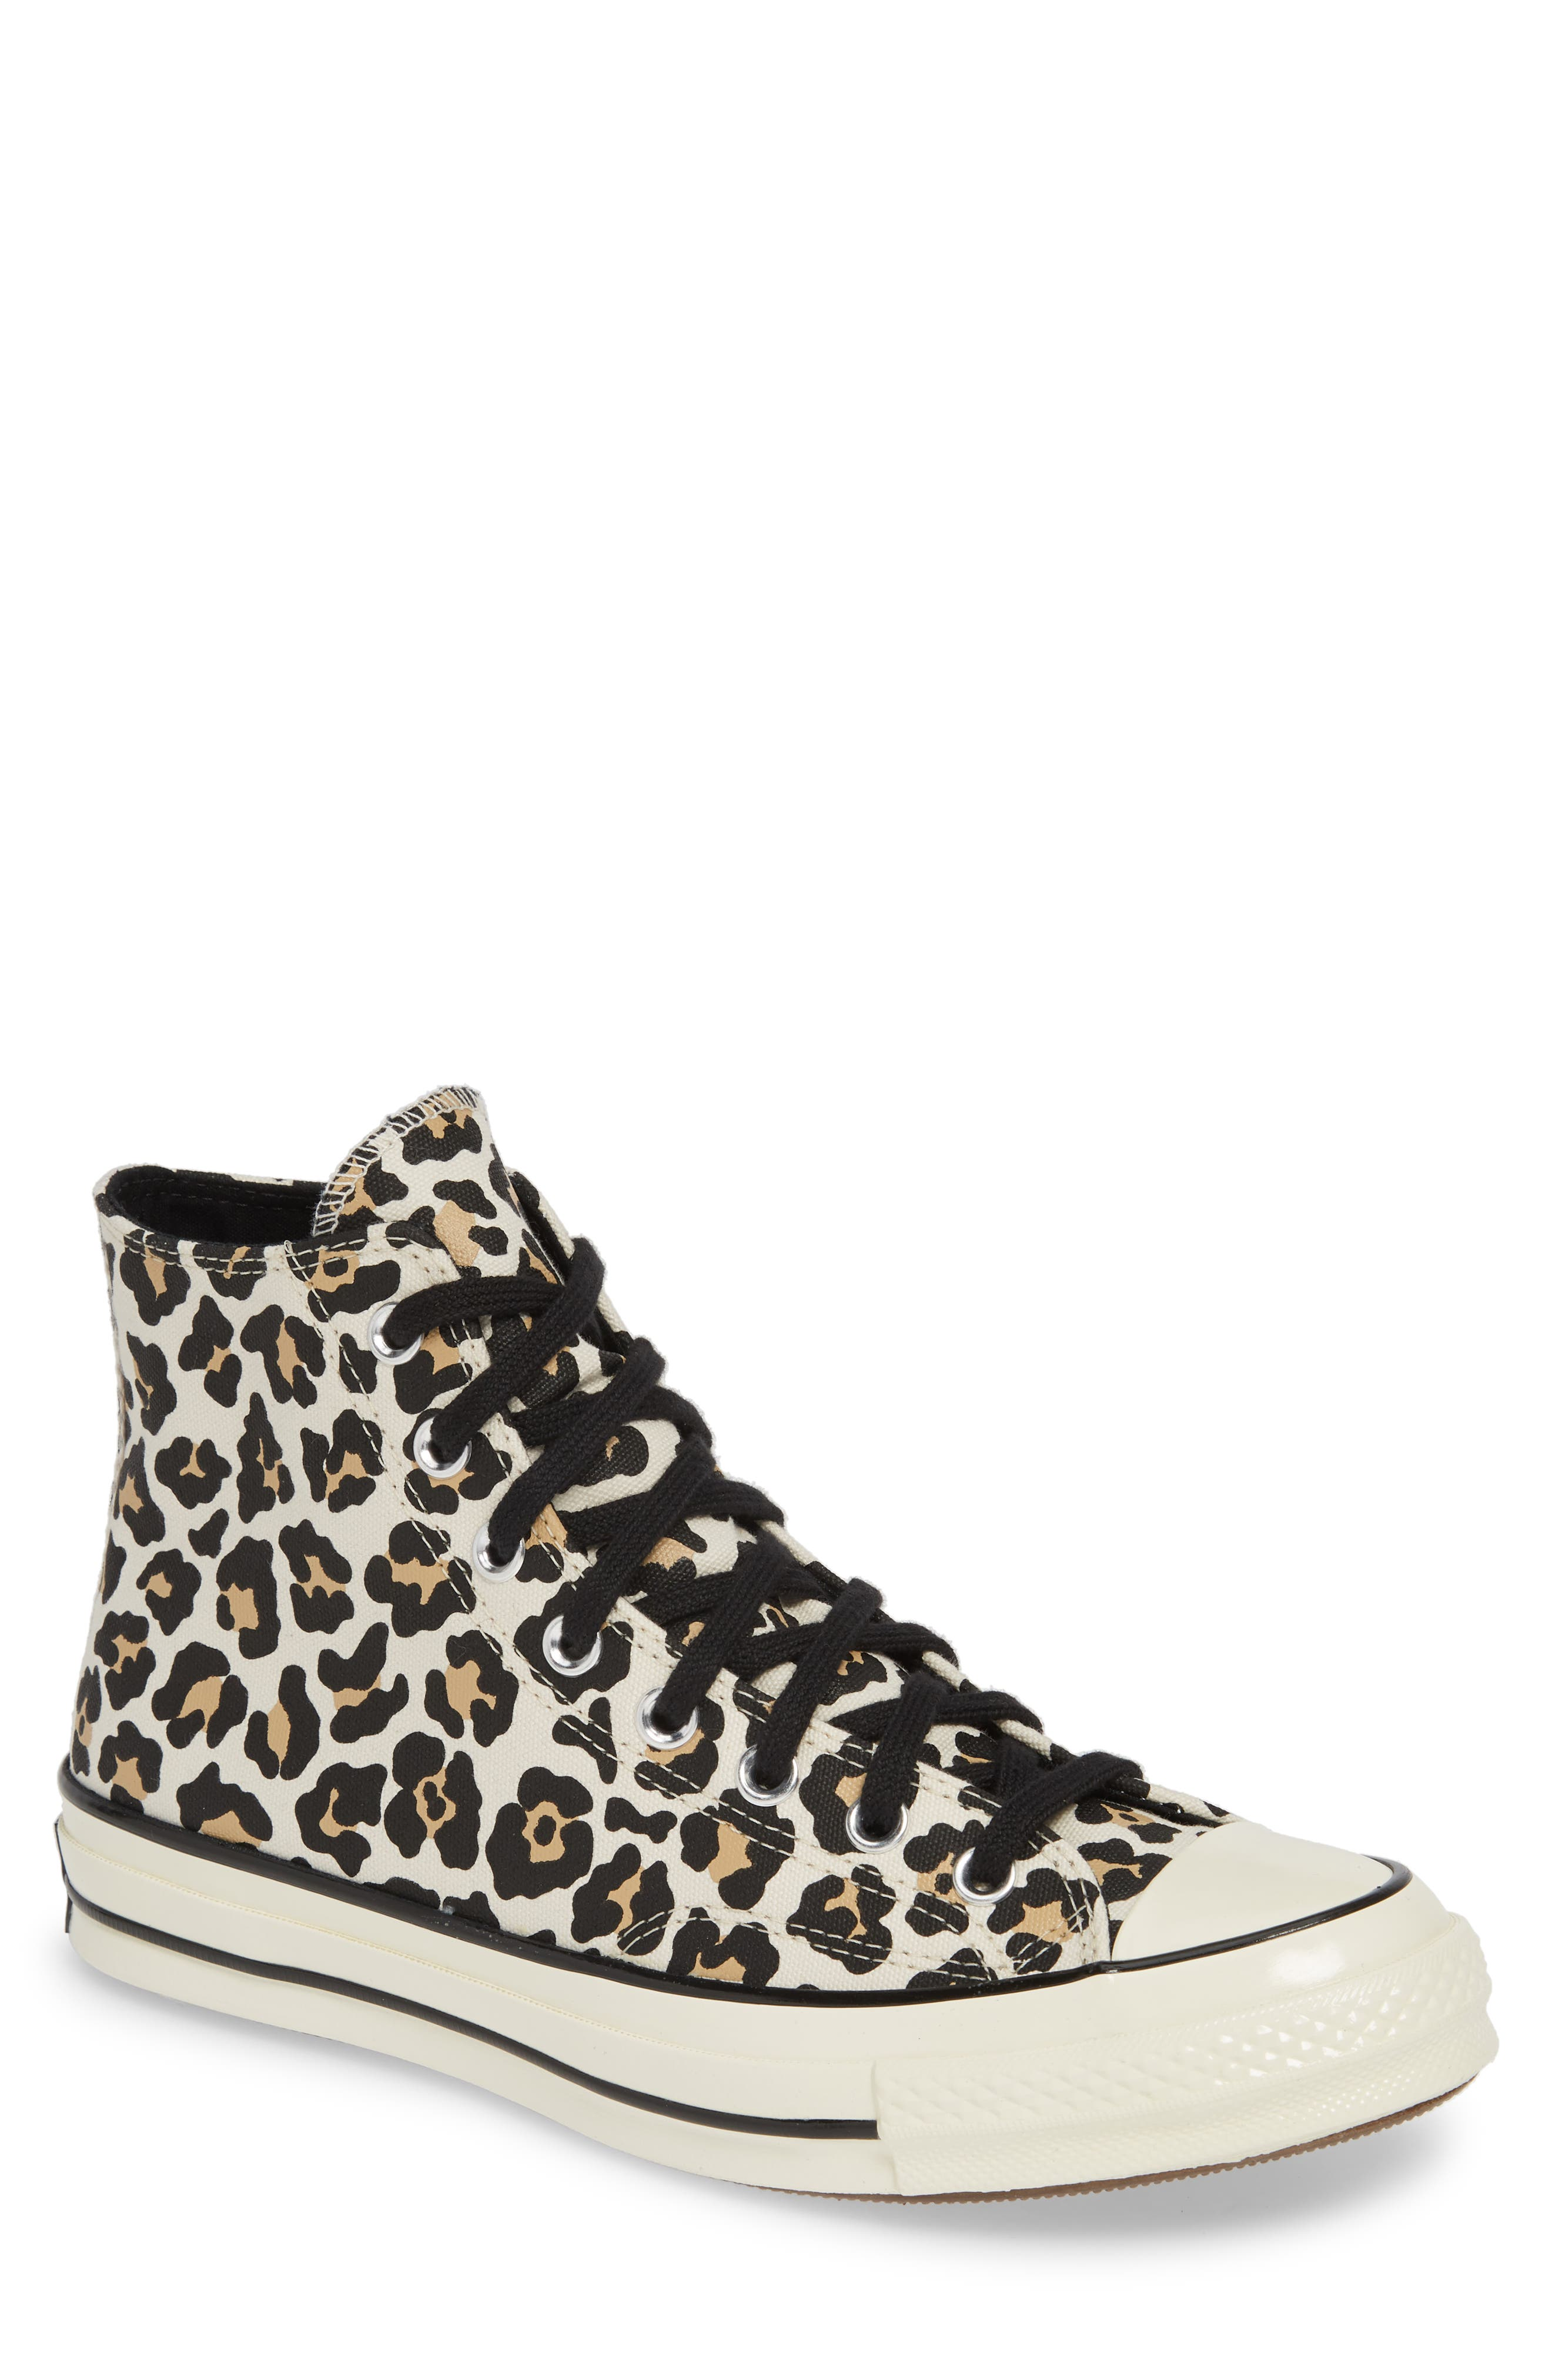 CONVERSE, Chuck Taylor<sup>®</sup> All Star<sup>®</sup> 70 High Top Sneaker, Main thumbnail 1, color, DRIFTWOOD/ LIGHT FAWN